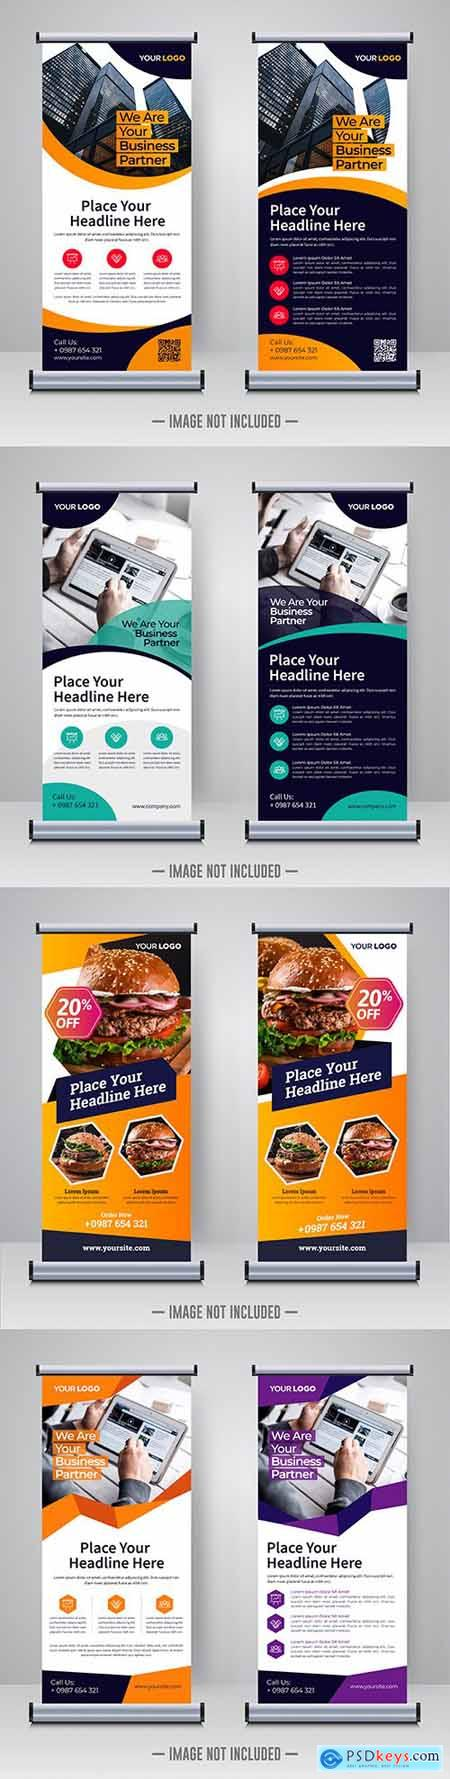 Modern corporate roll and banner design template